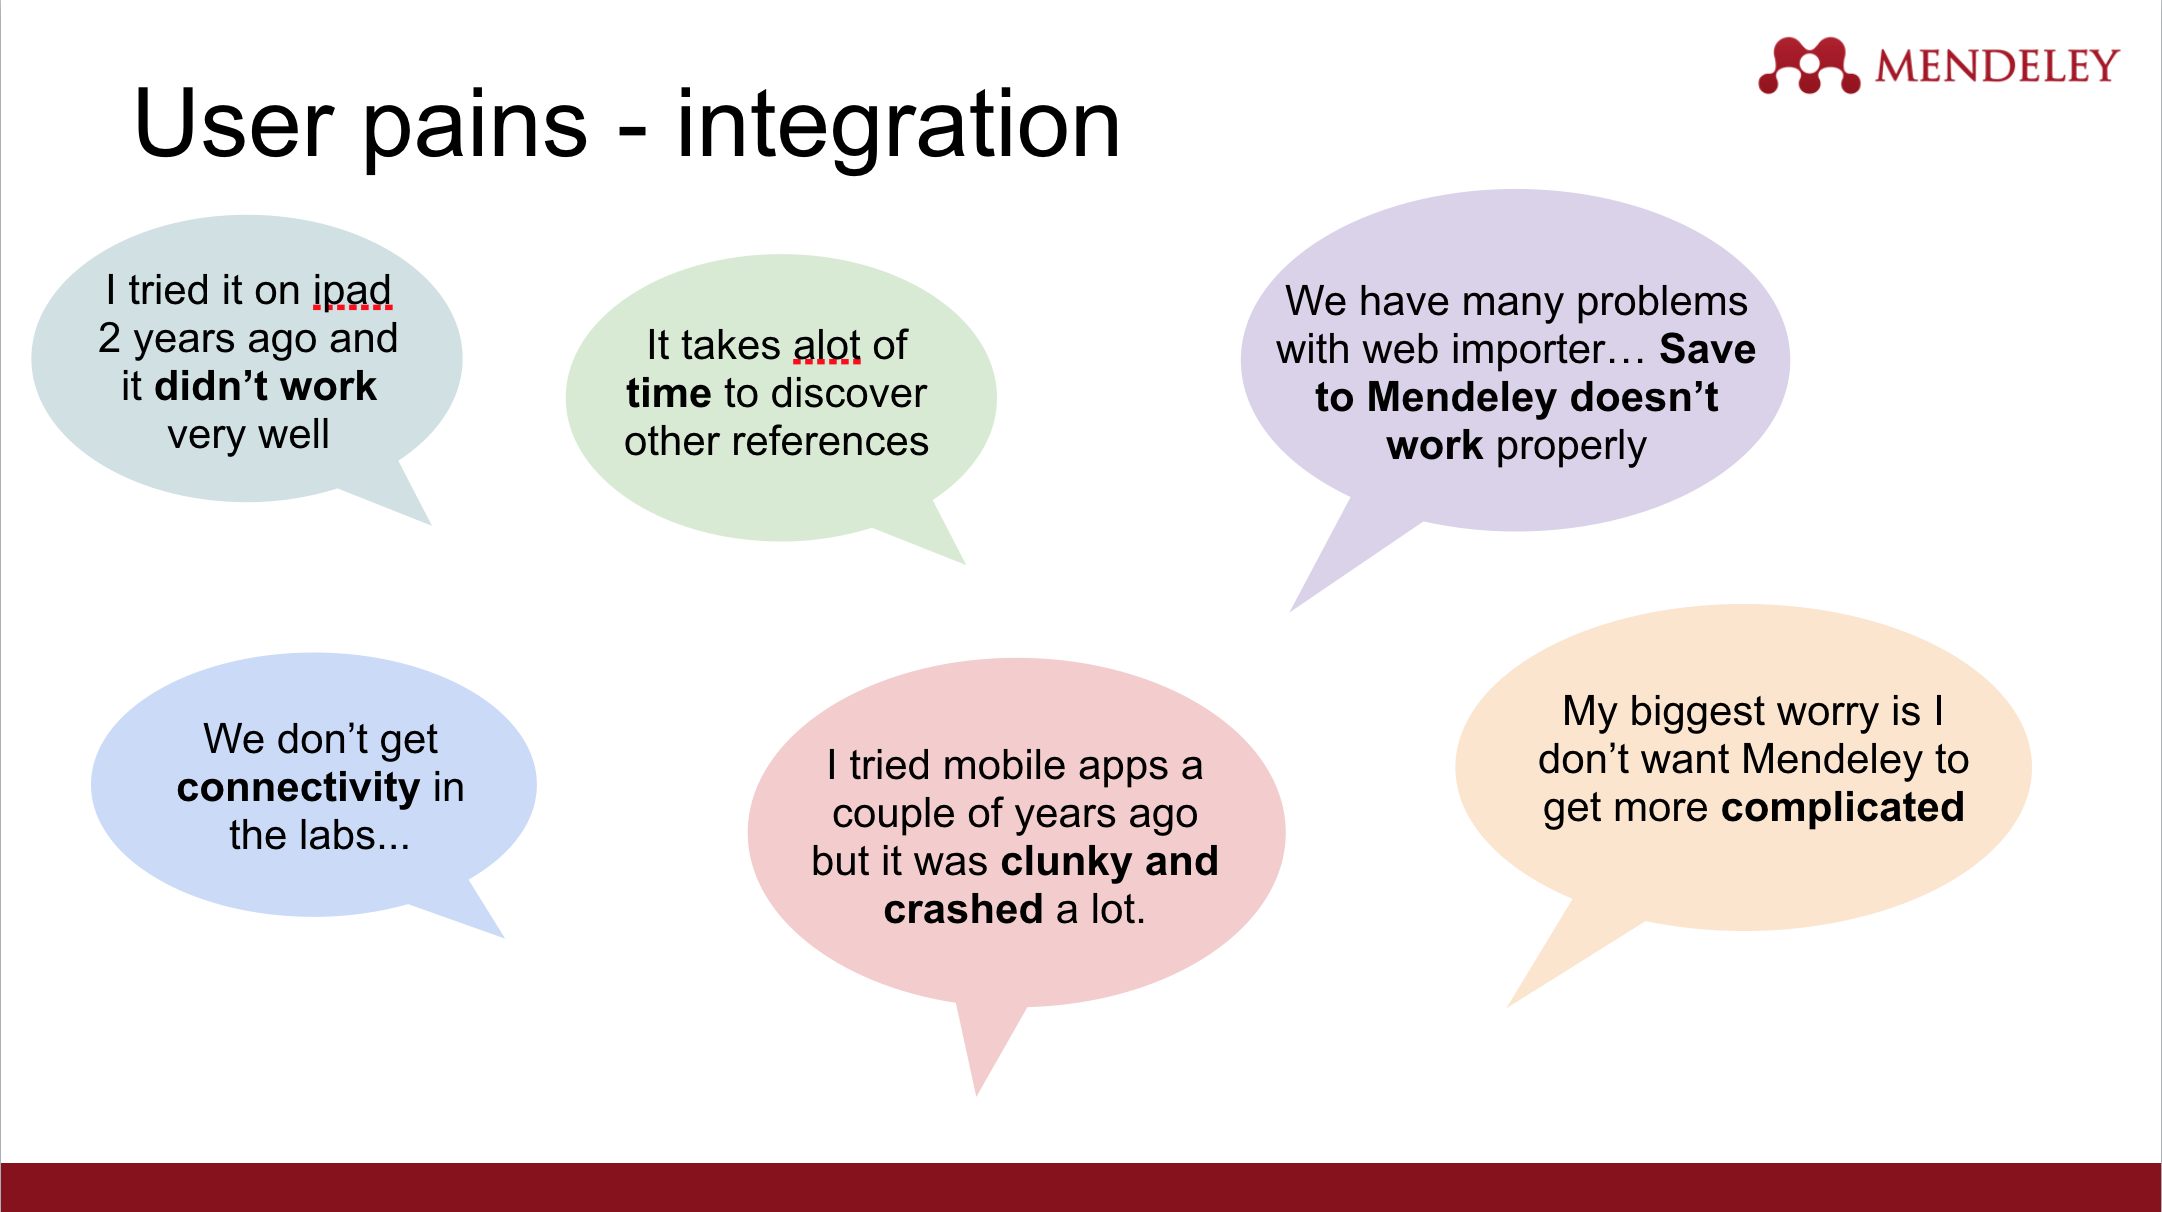 User pains between device integration